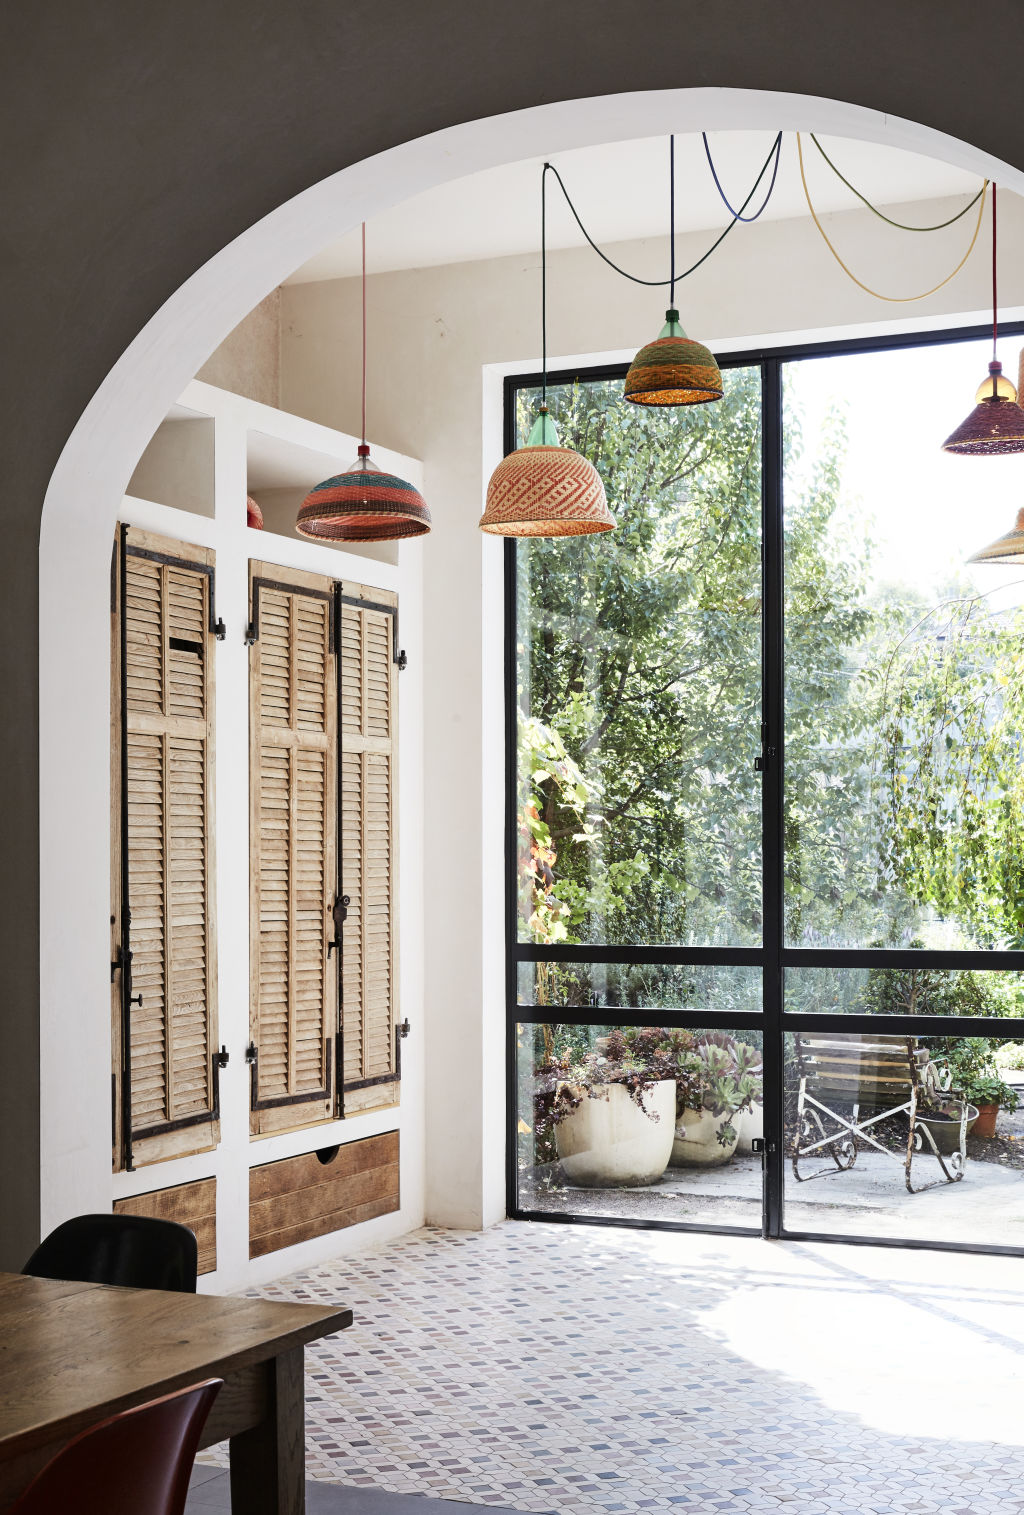 Incredible PET Lamp woven lampshades (using recycled plastic bottles!) from Safari Living. Wooden shutters from Manon bis. Styling: Annie Portelli.